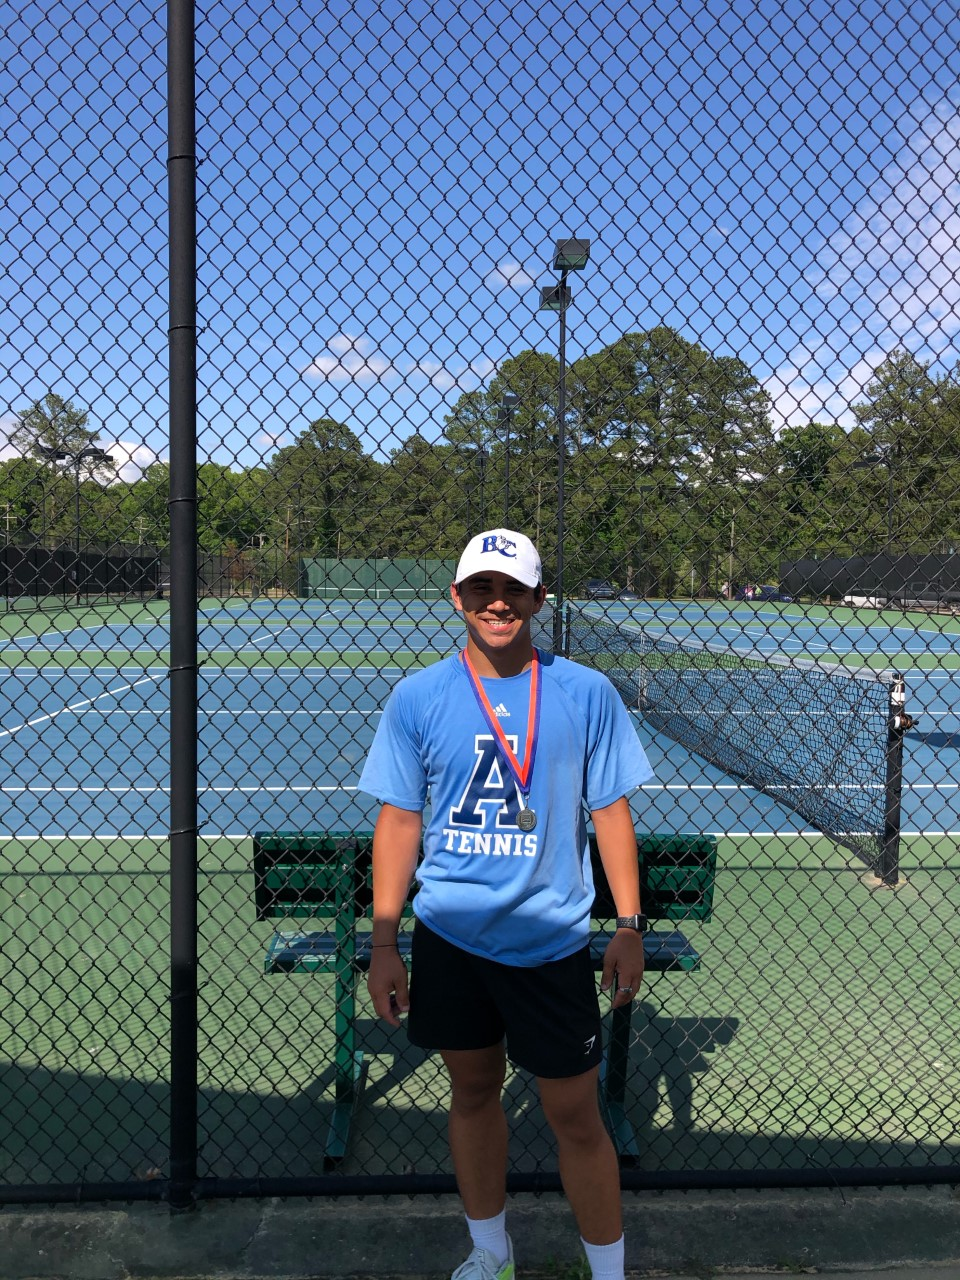 Boys Tennis: C.B. Aycock's Rodriquez Headed To State Tournament